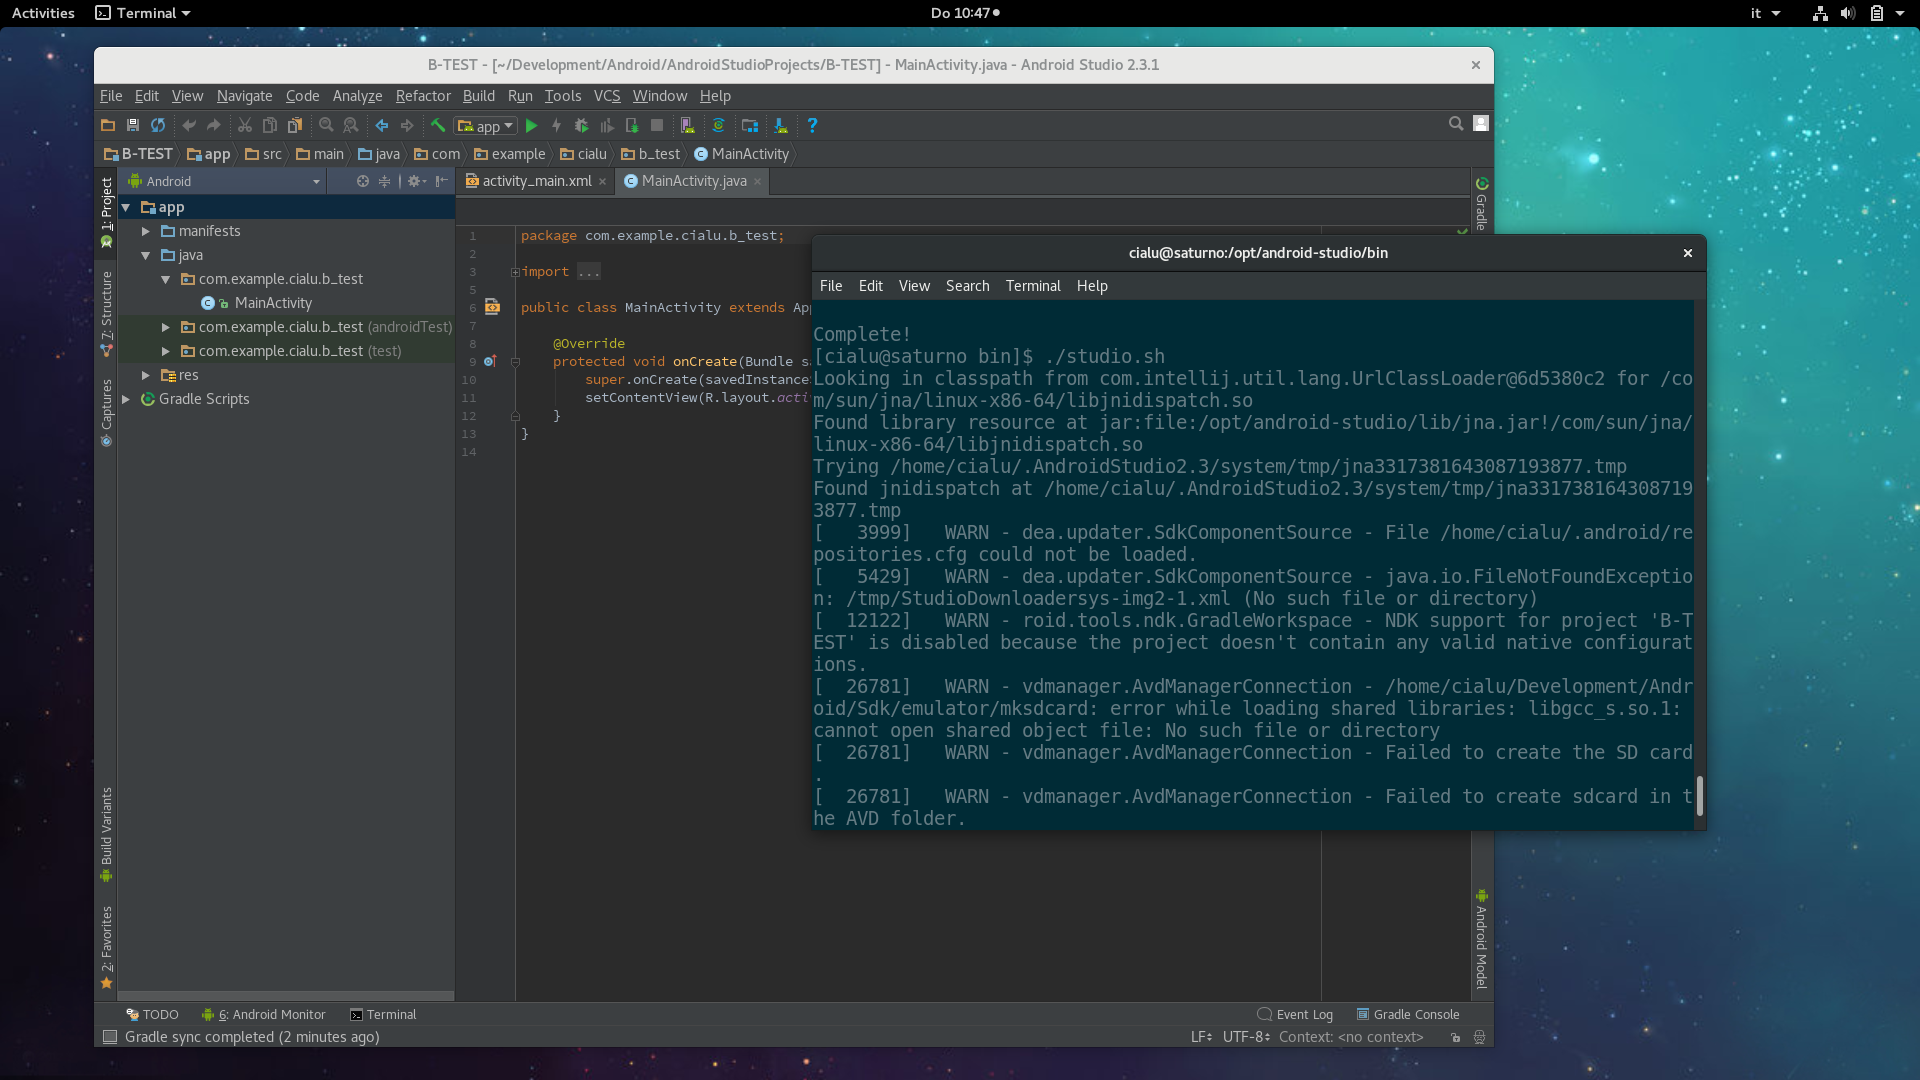 Install Android Studio on Fedora 26 - CIALU NET